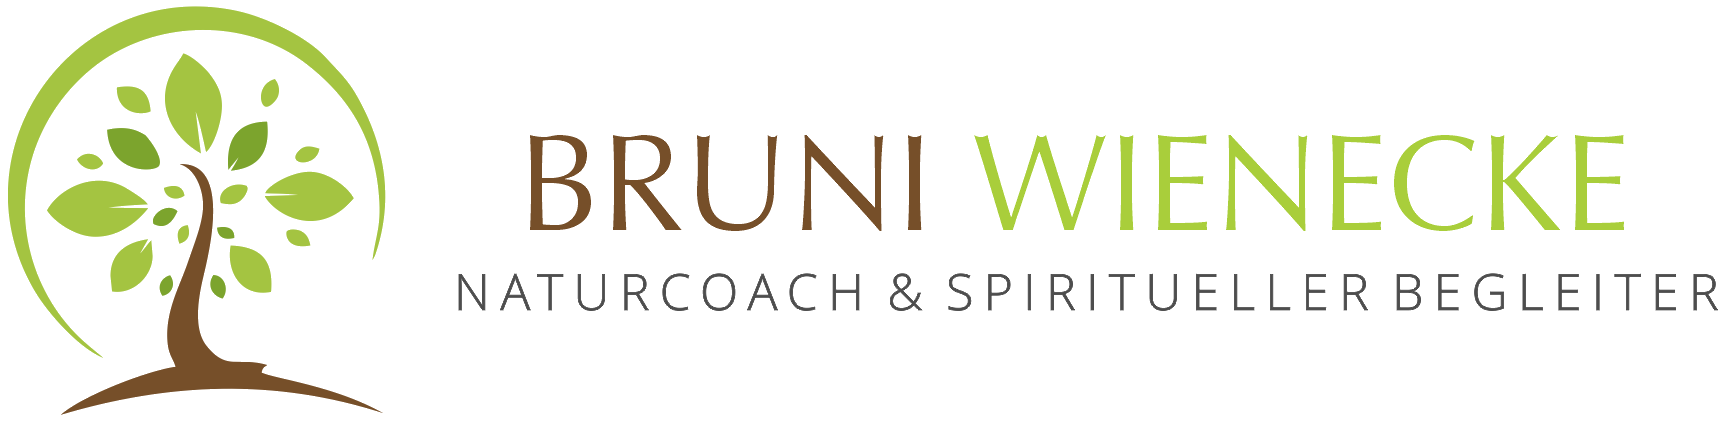 Naturcoach Bruni Wienecke